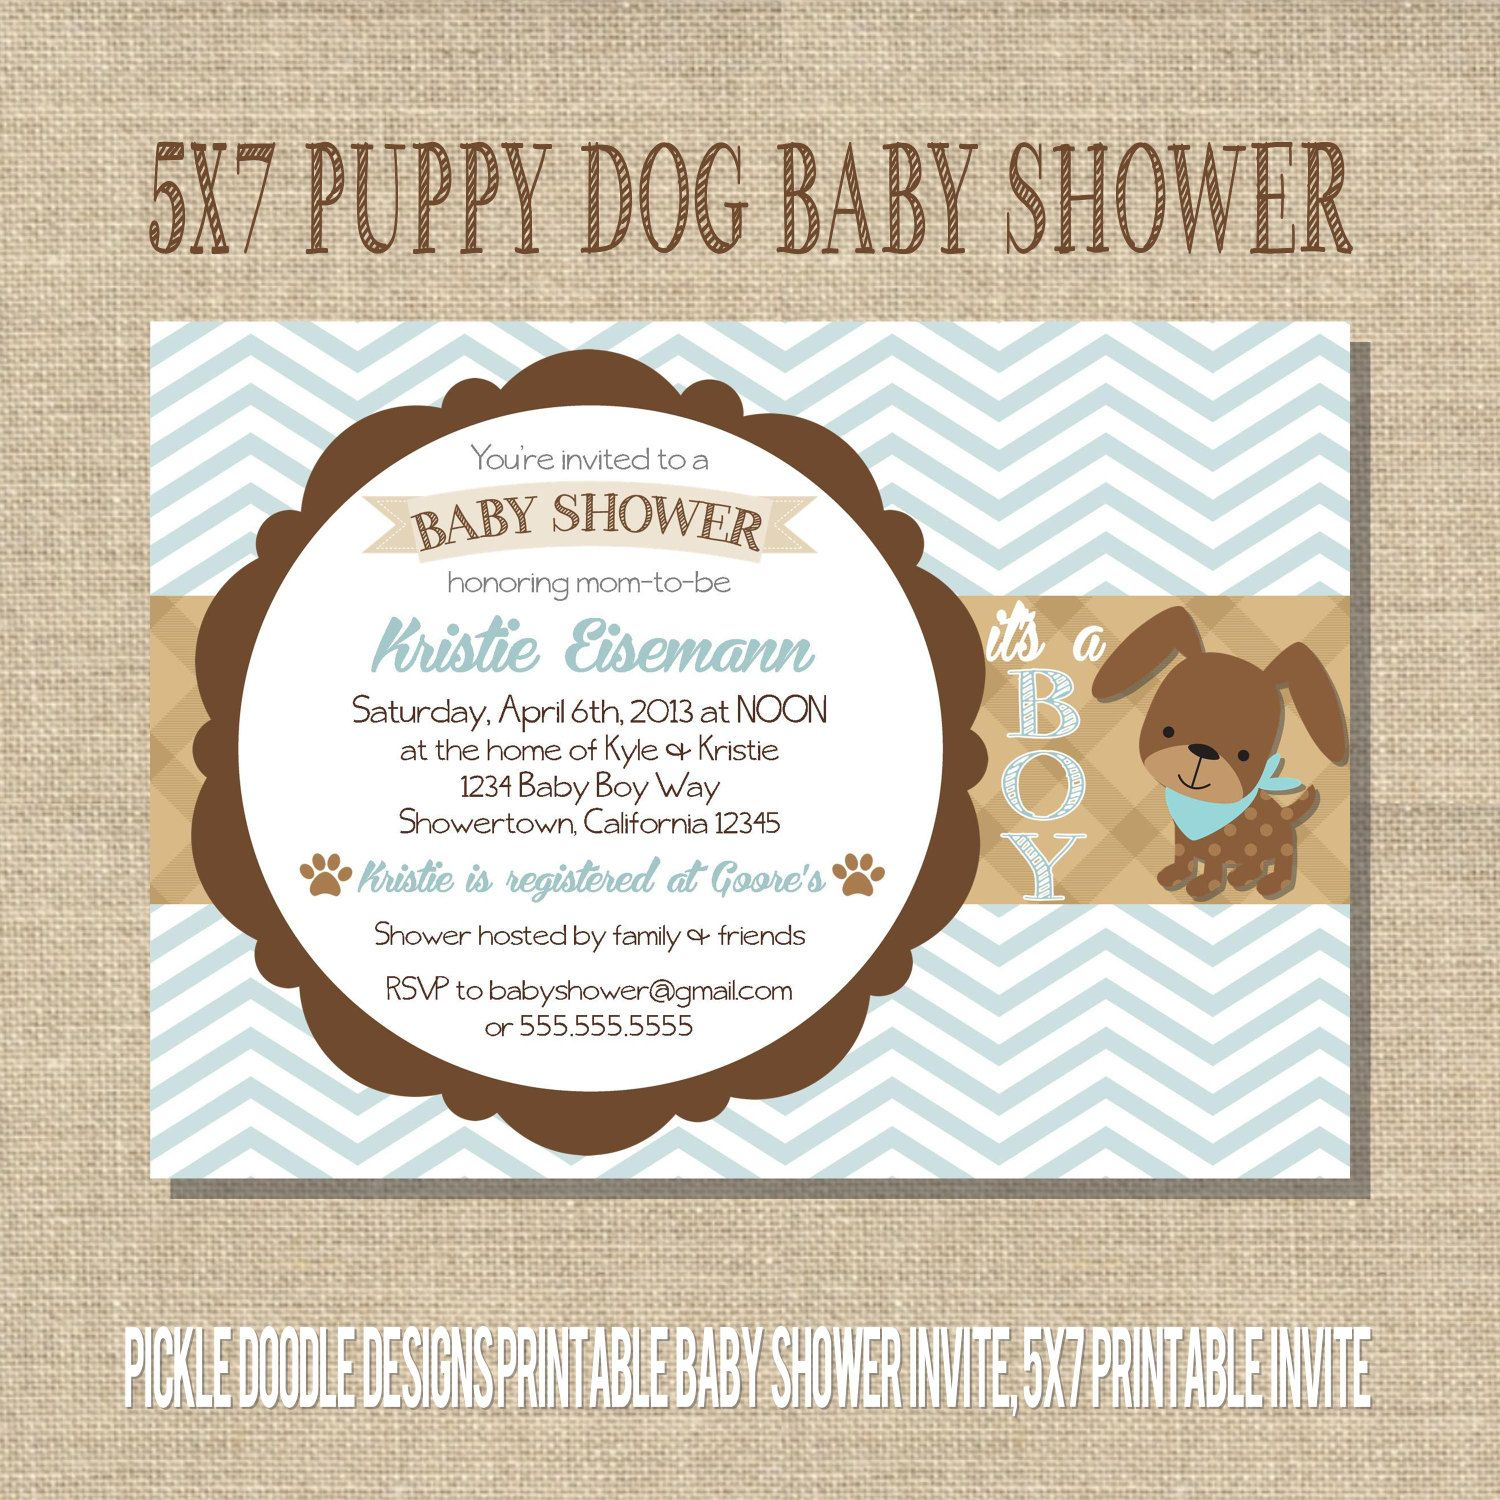 Puppy dog baby boy shower invitation blue by pickledoodledesigns puppy dog baby boy shower invitation blue by pickledoodledesigns 1600 filmwisefo Image collections